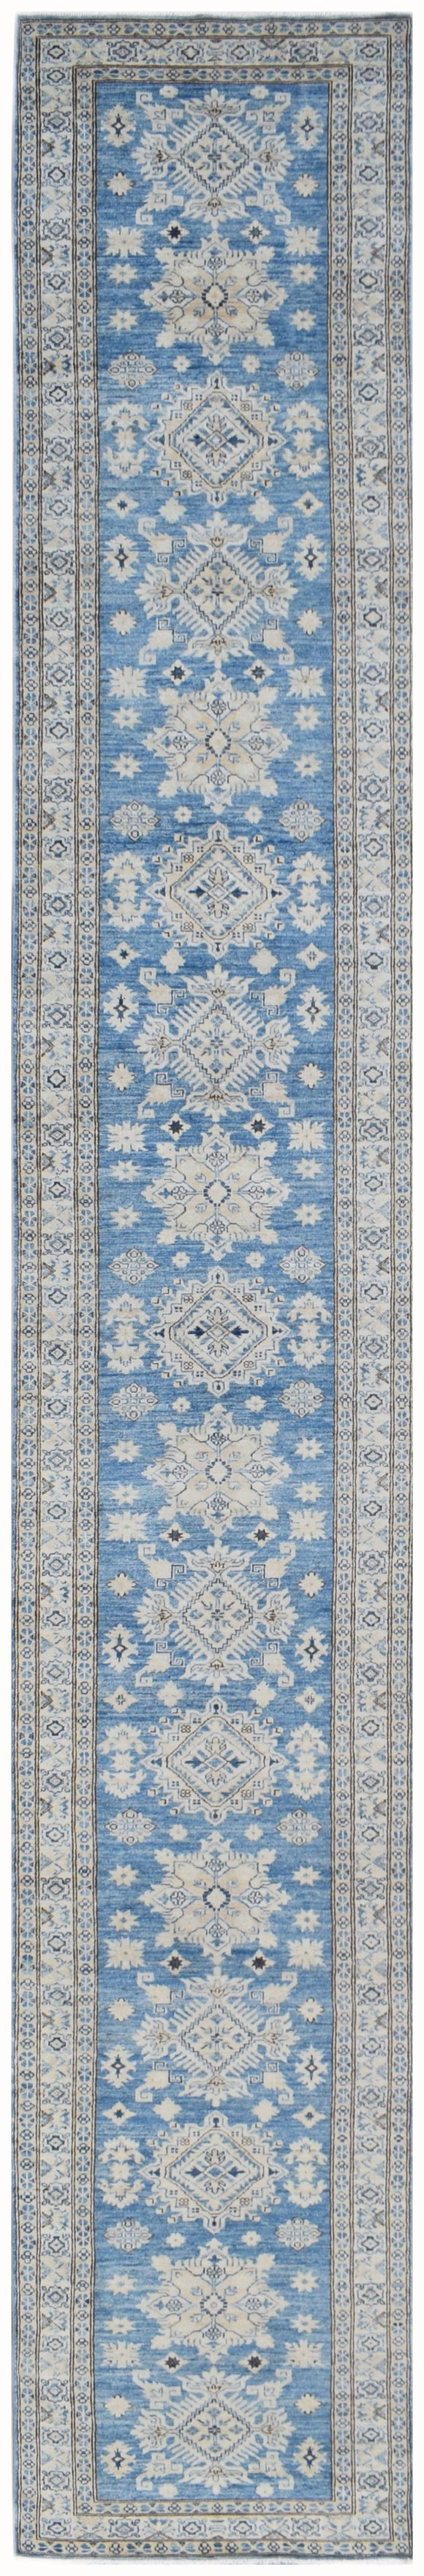 Handmade Super Sultan Collection Hallway Runner | 614 x 88 cm | 20'2